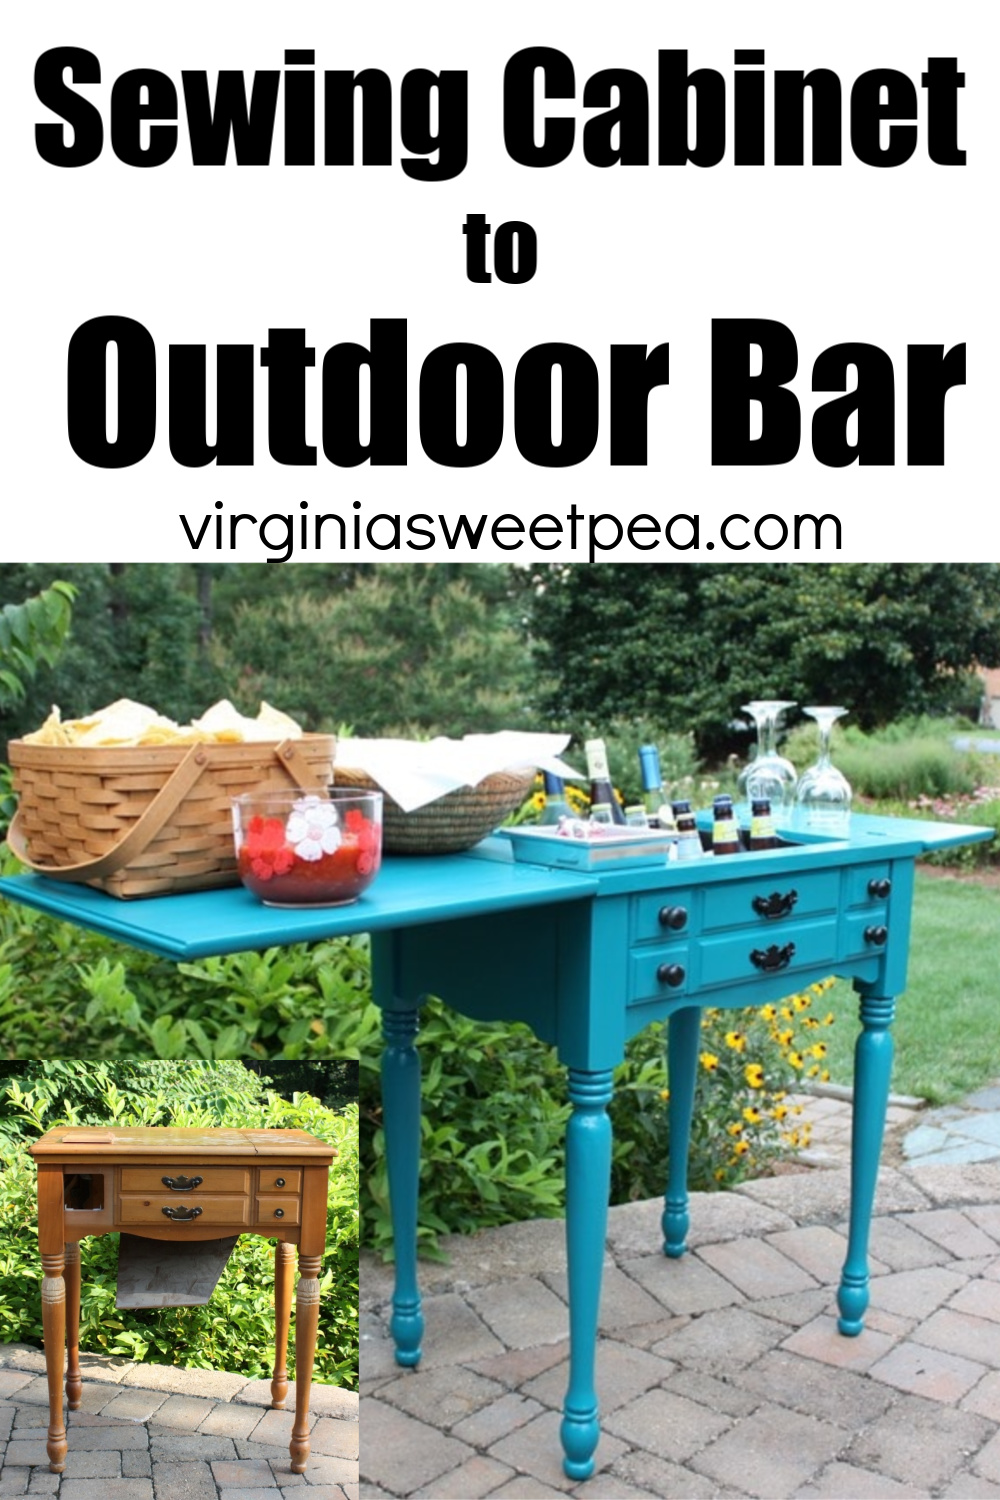 Sewing cabinet repurposed to outdoor bar